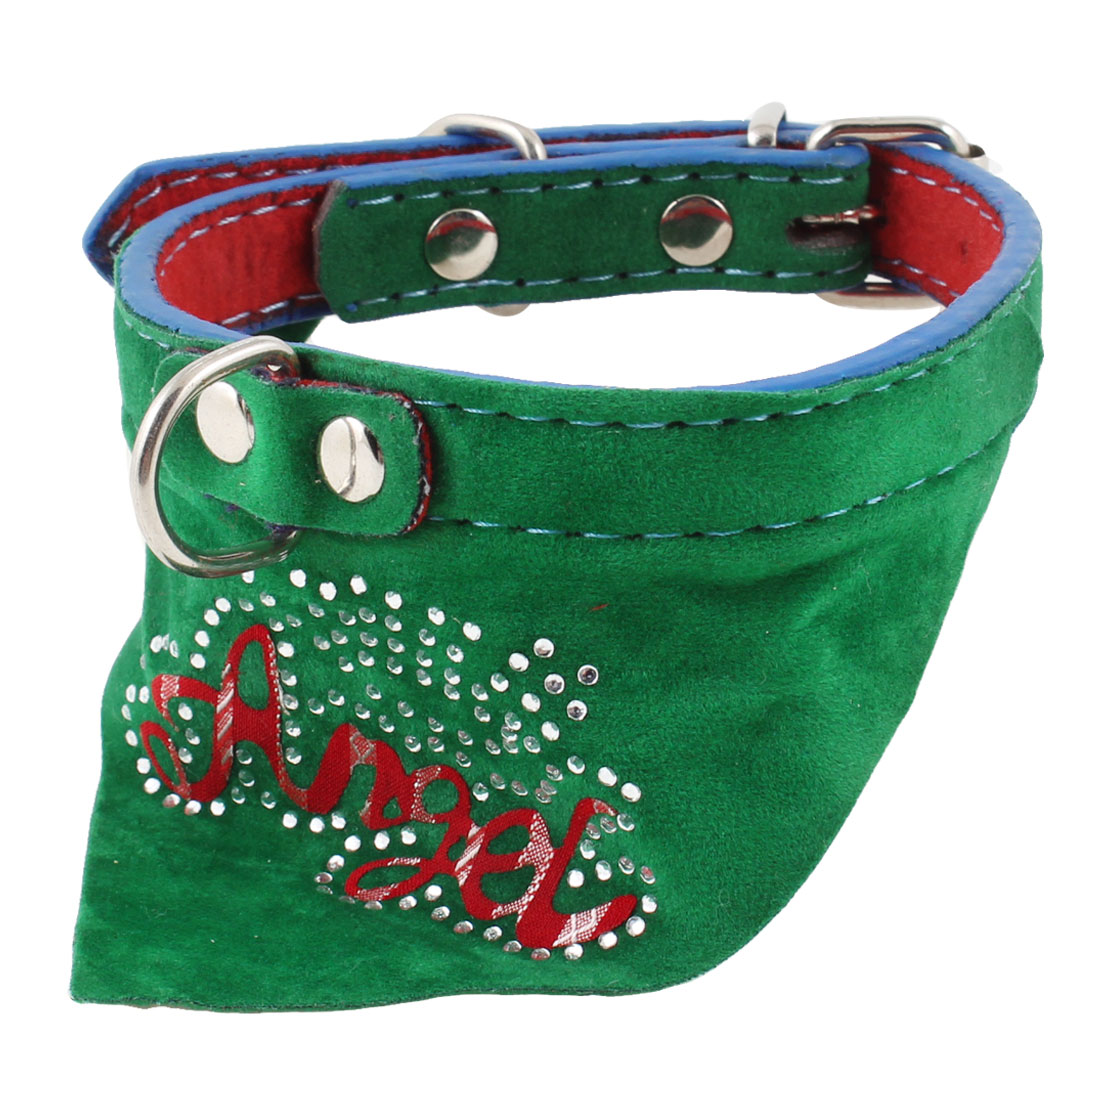 Single Pin Buckle Letters Printed Adjustable Bandana Collar Green for Pet Dog